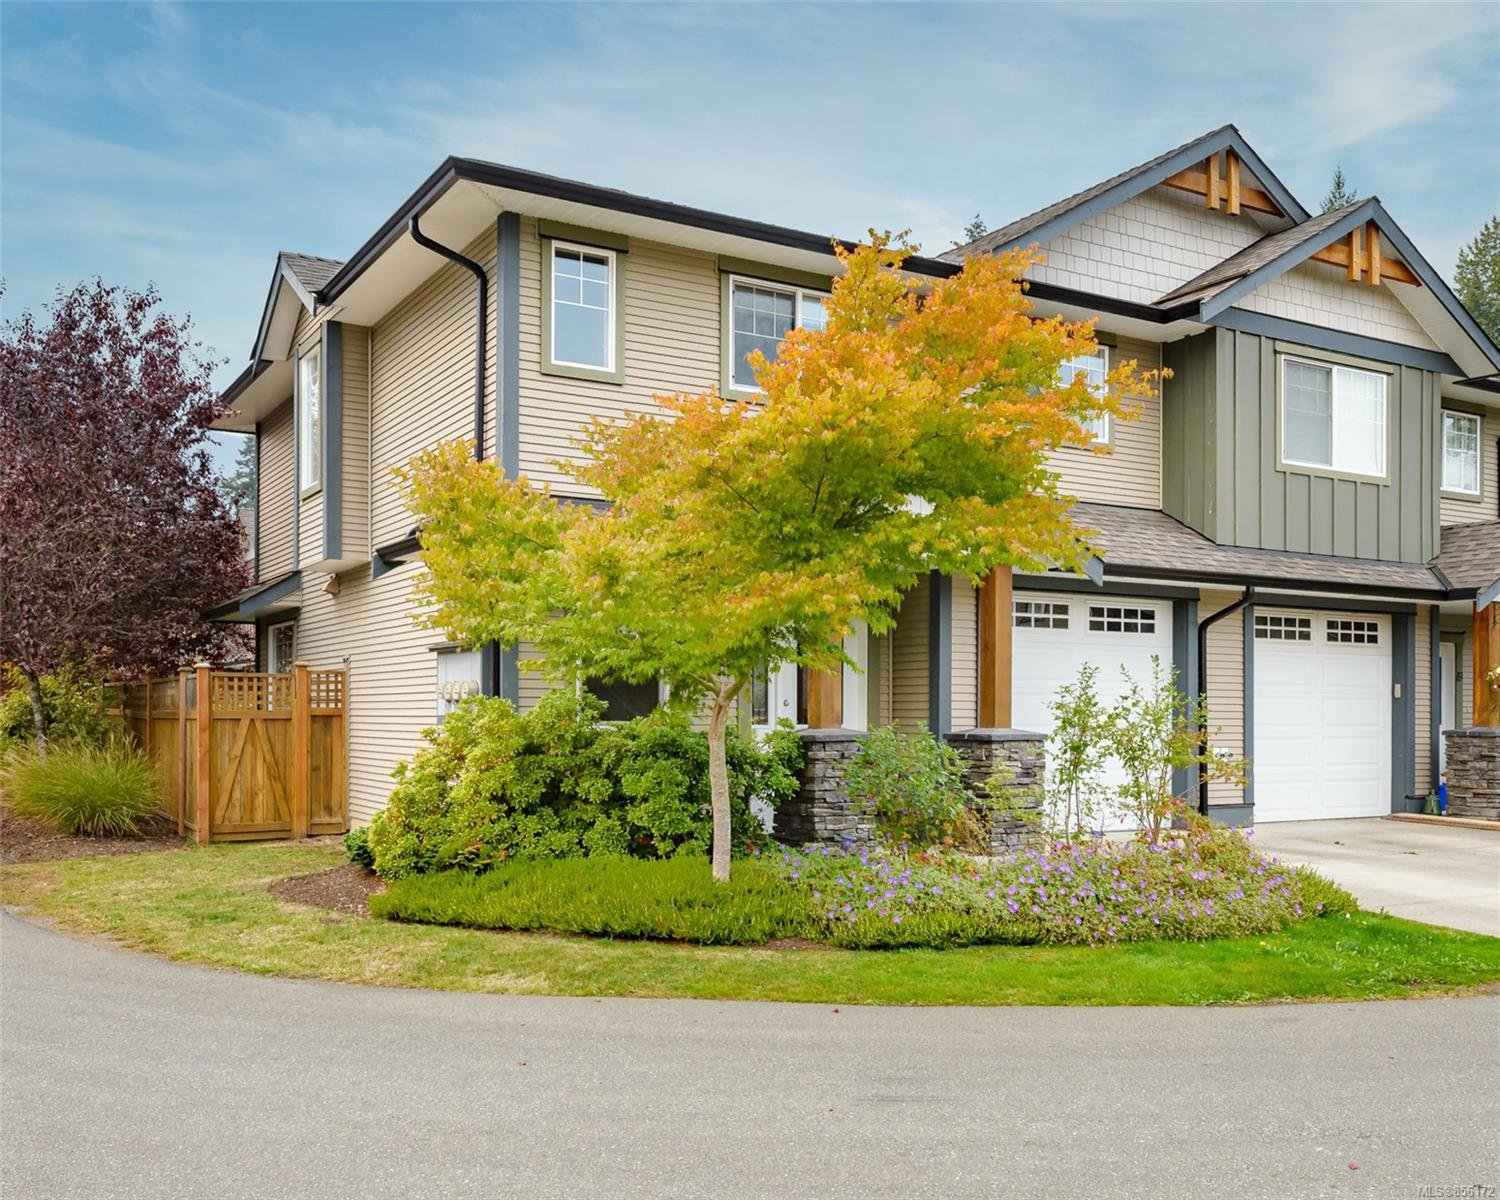 Main Photo: 21 2112 Cumberland Rd in : CV Courtenay City Row/Townhouse for sale (Comox Valley)  : MLS®# 856172